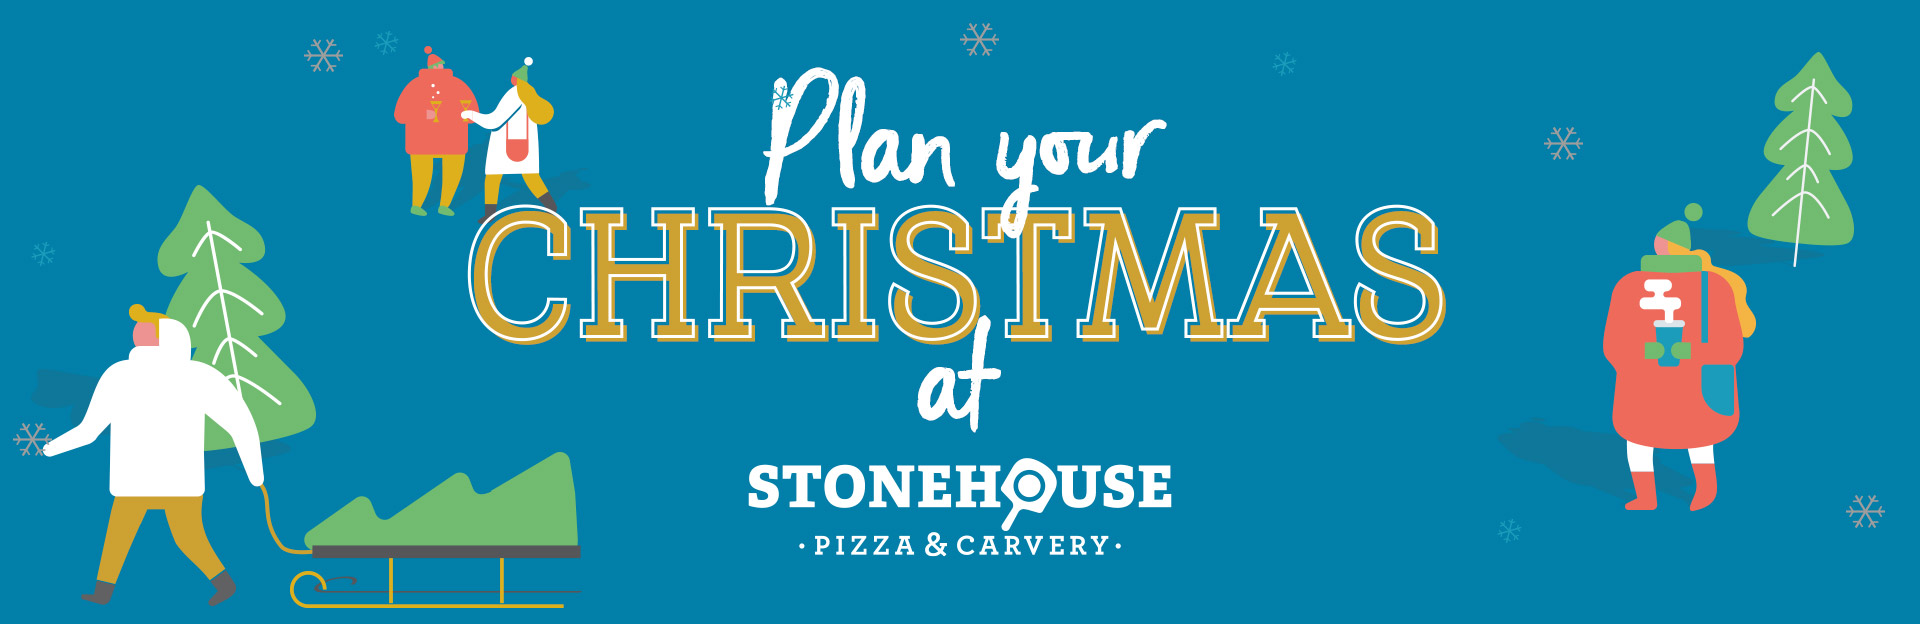 Stonehouse Celebration Menu